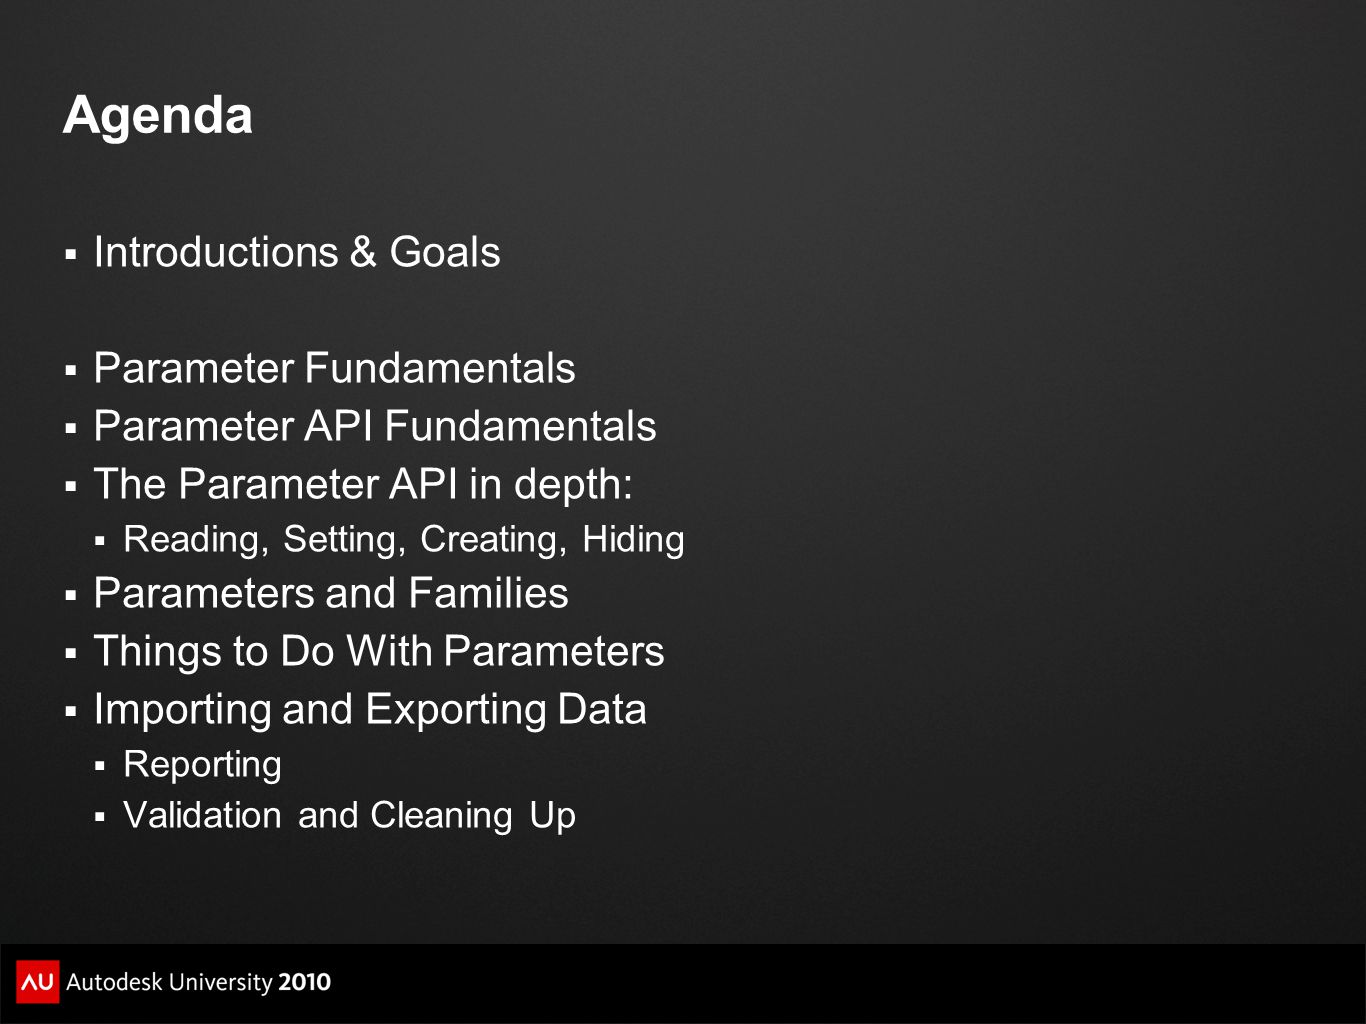 Agenda  Introductions & Goals  Parameter Fundamentals  Parameter API Fundamentals  The Parameter API in depth:  Reading, Setting, Creating, Hidin